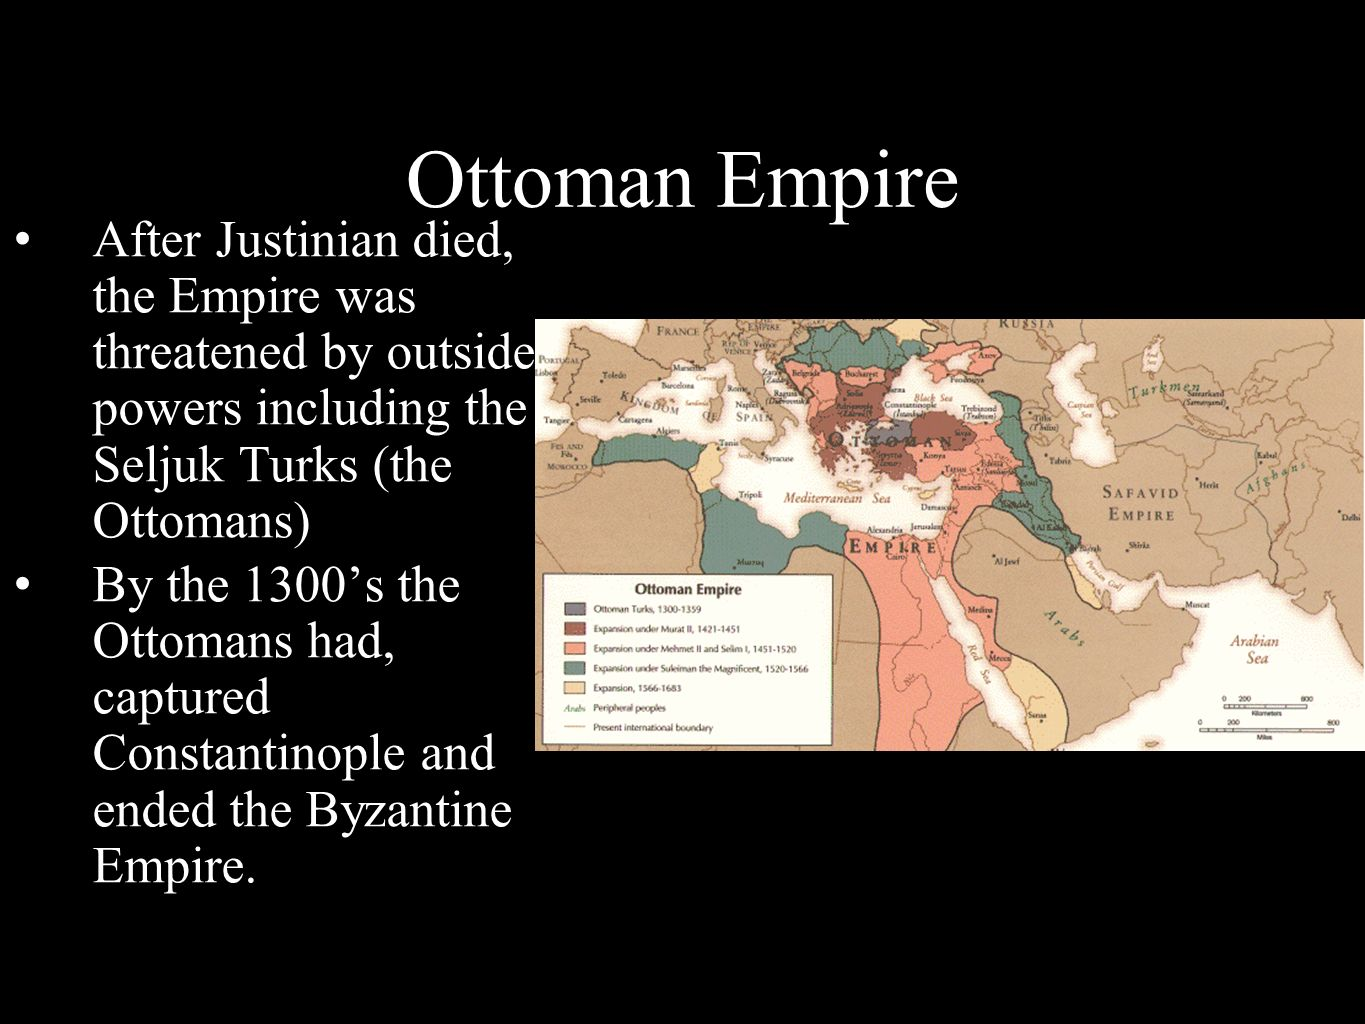 Ottoman Empire After Justinian died, the Empire was threatened by outside powers including the Seljuk Turks (the Ottomans)